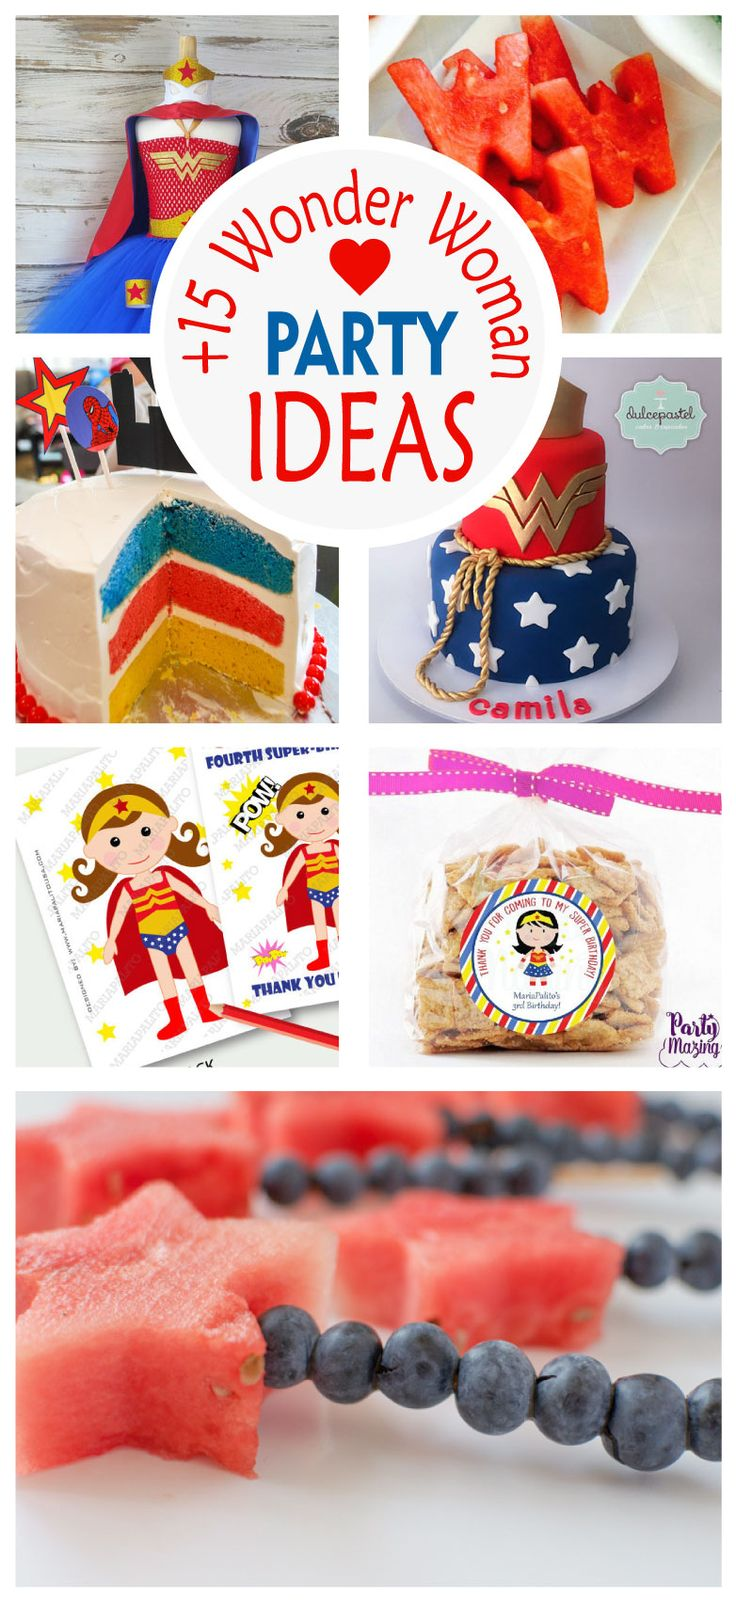 New post in Partymazing: 15 Amazing Wonder Woman Party Ideas. Visit www.partymazing.com